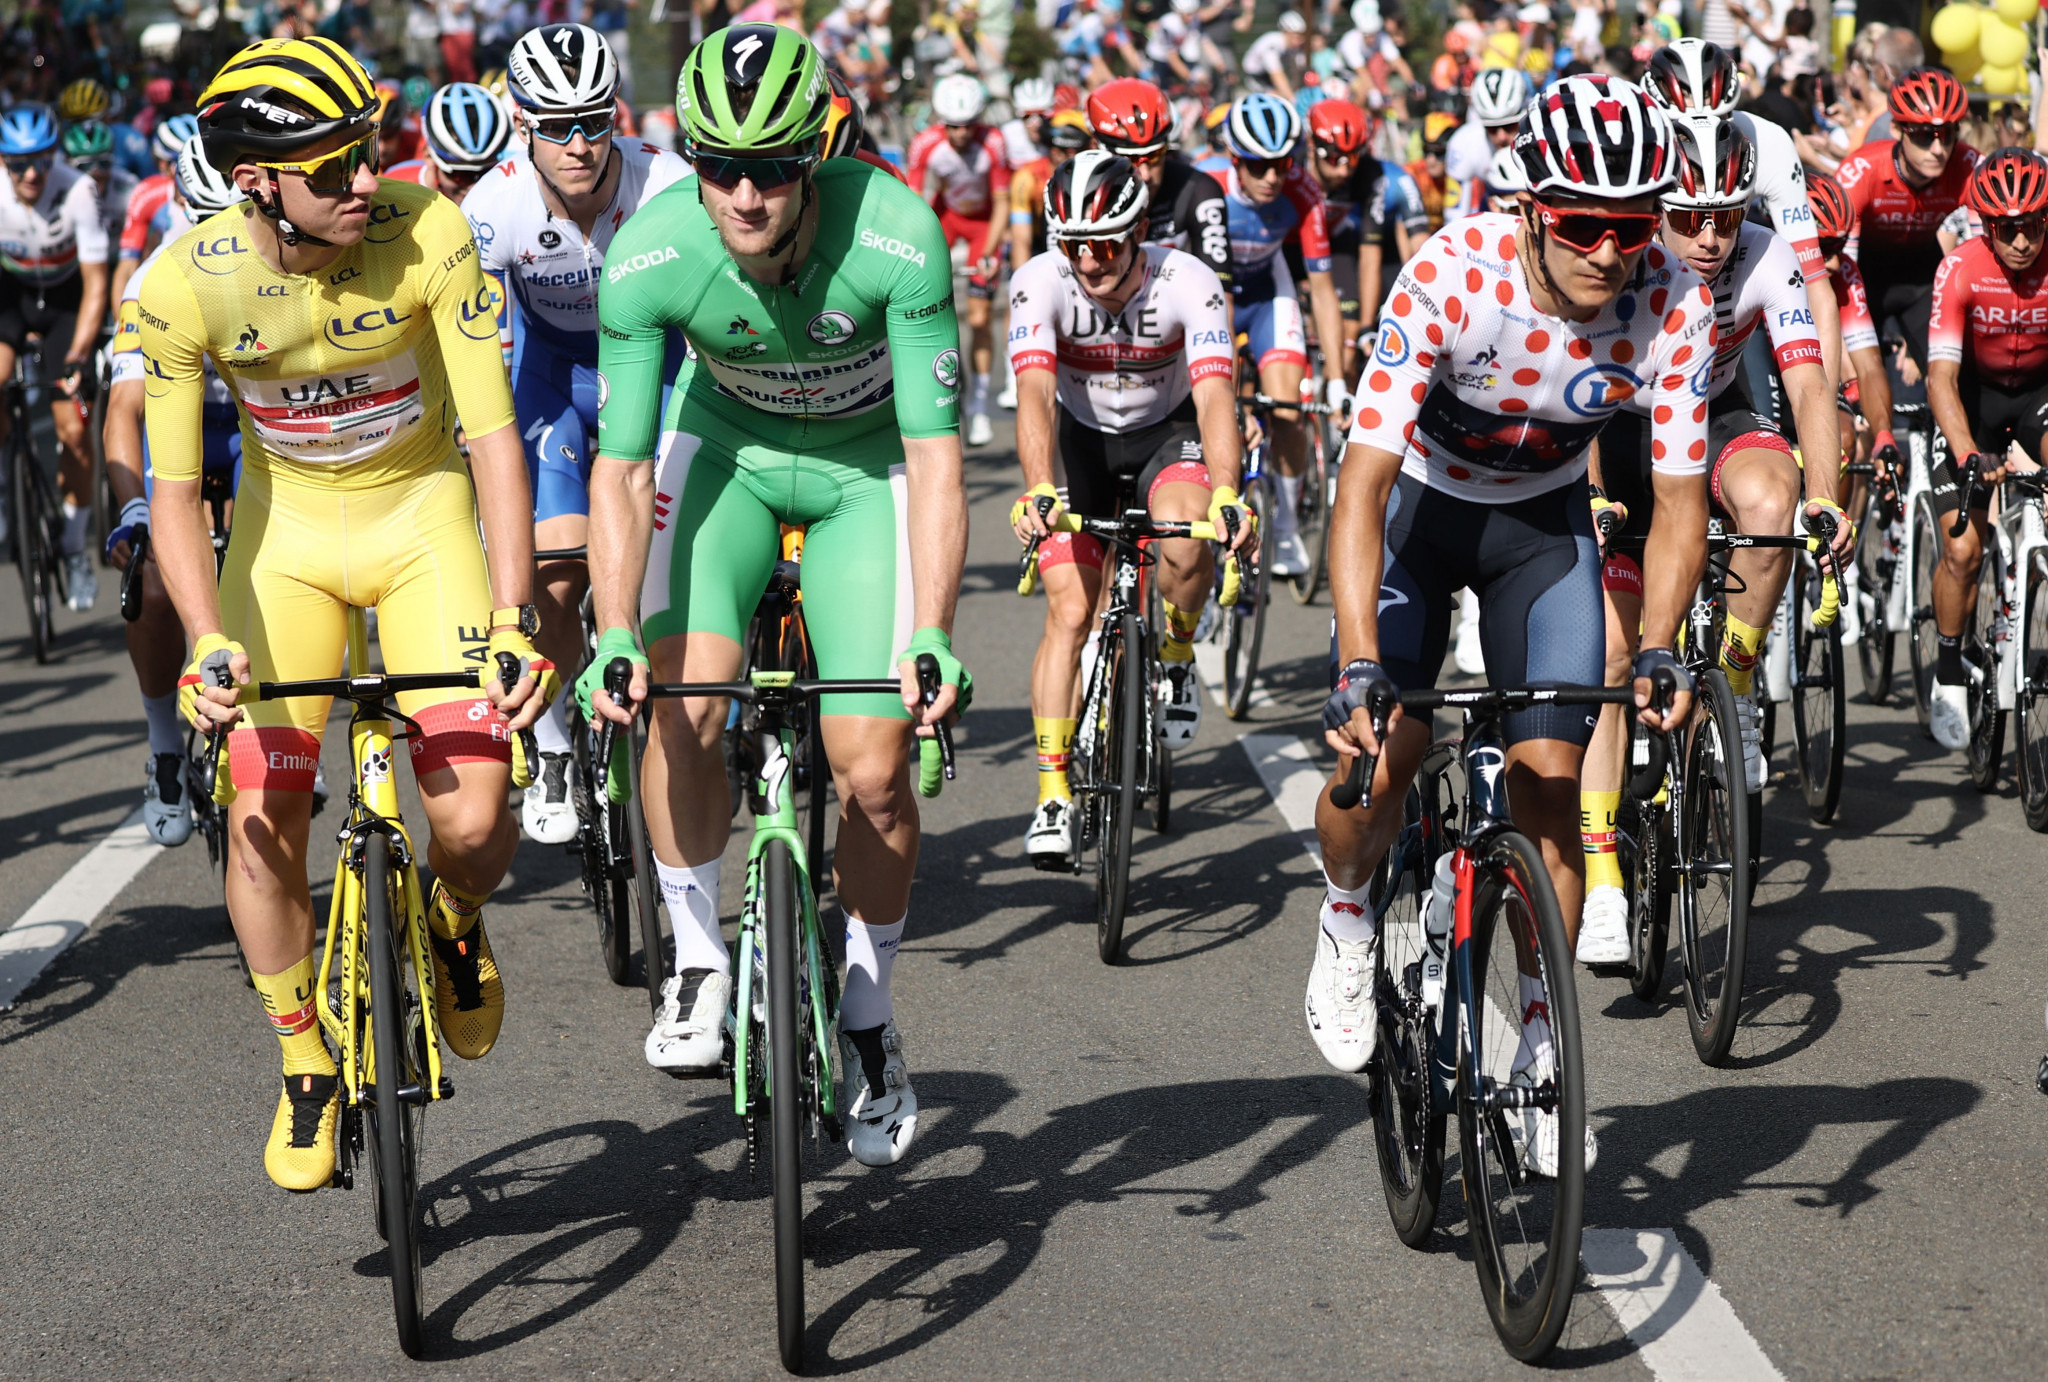 The ceremonial final stage took the riders into Paris ©Getty Images